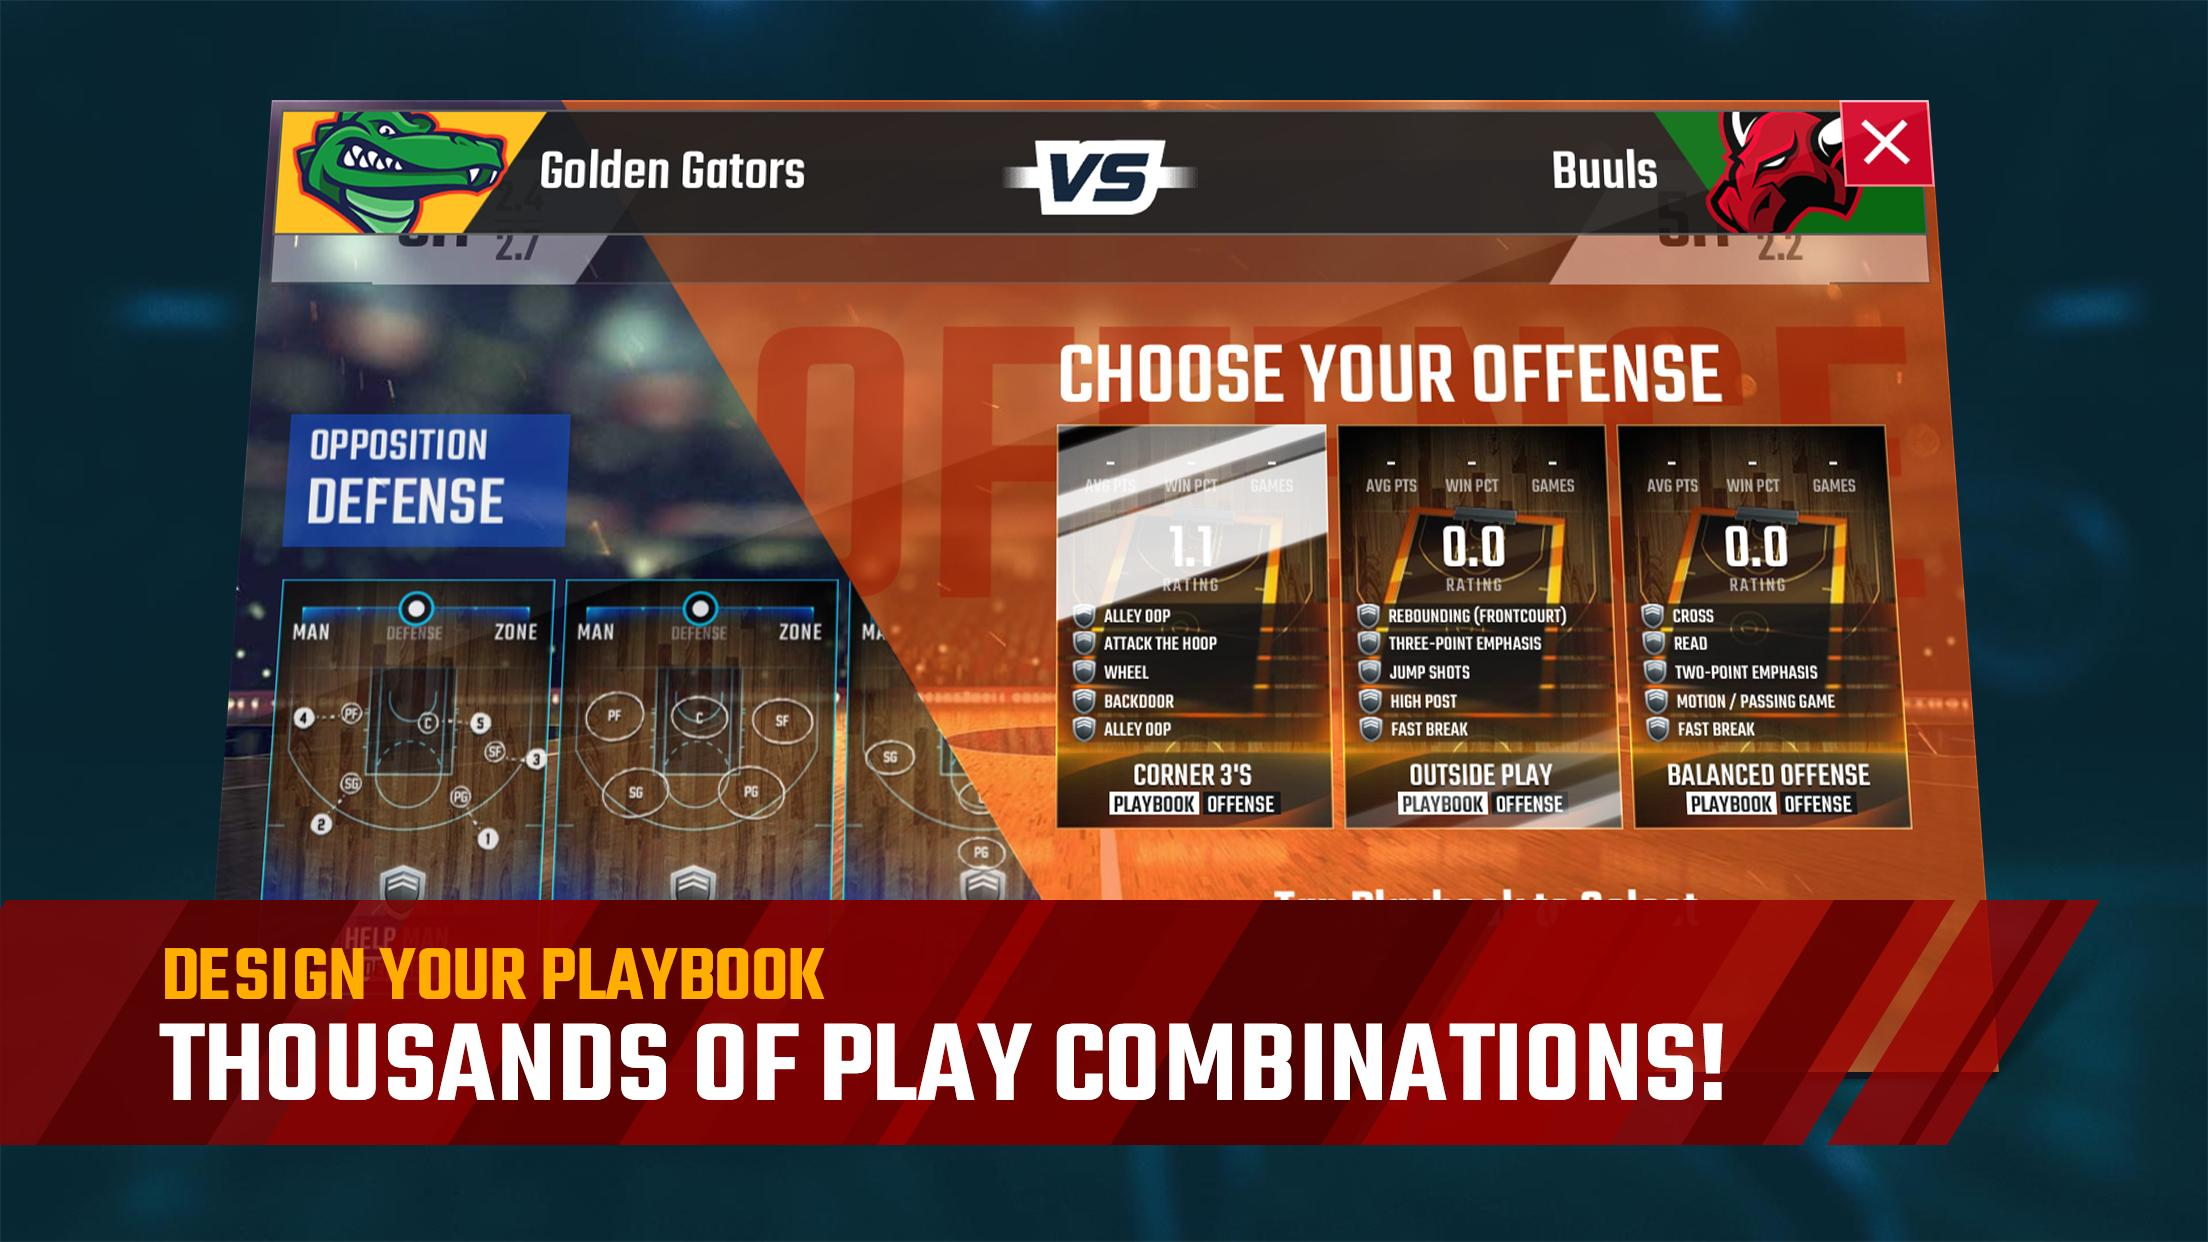 Franchise Basketball 2019 for Android - APK Download